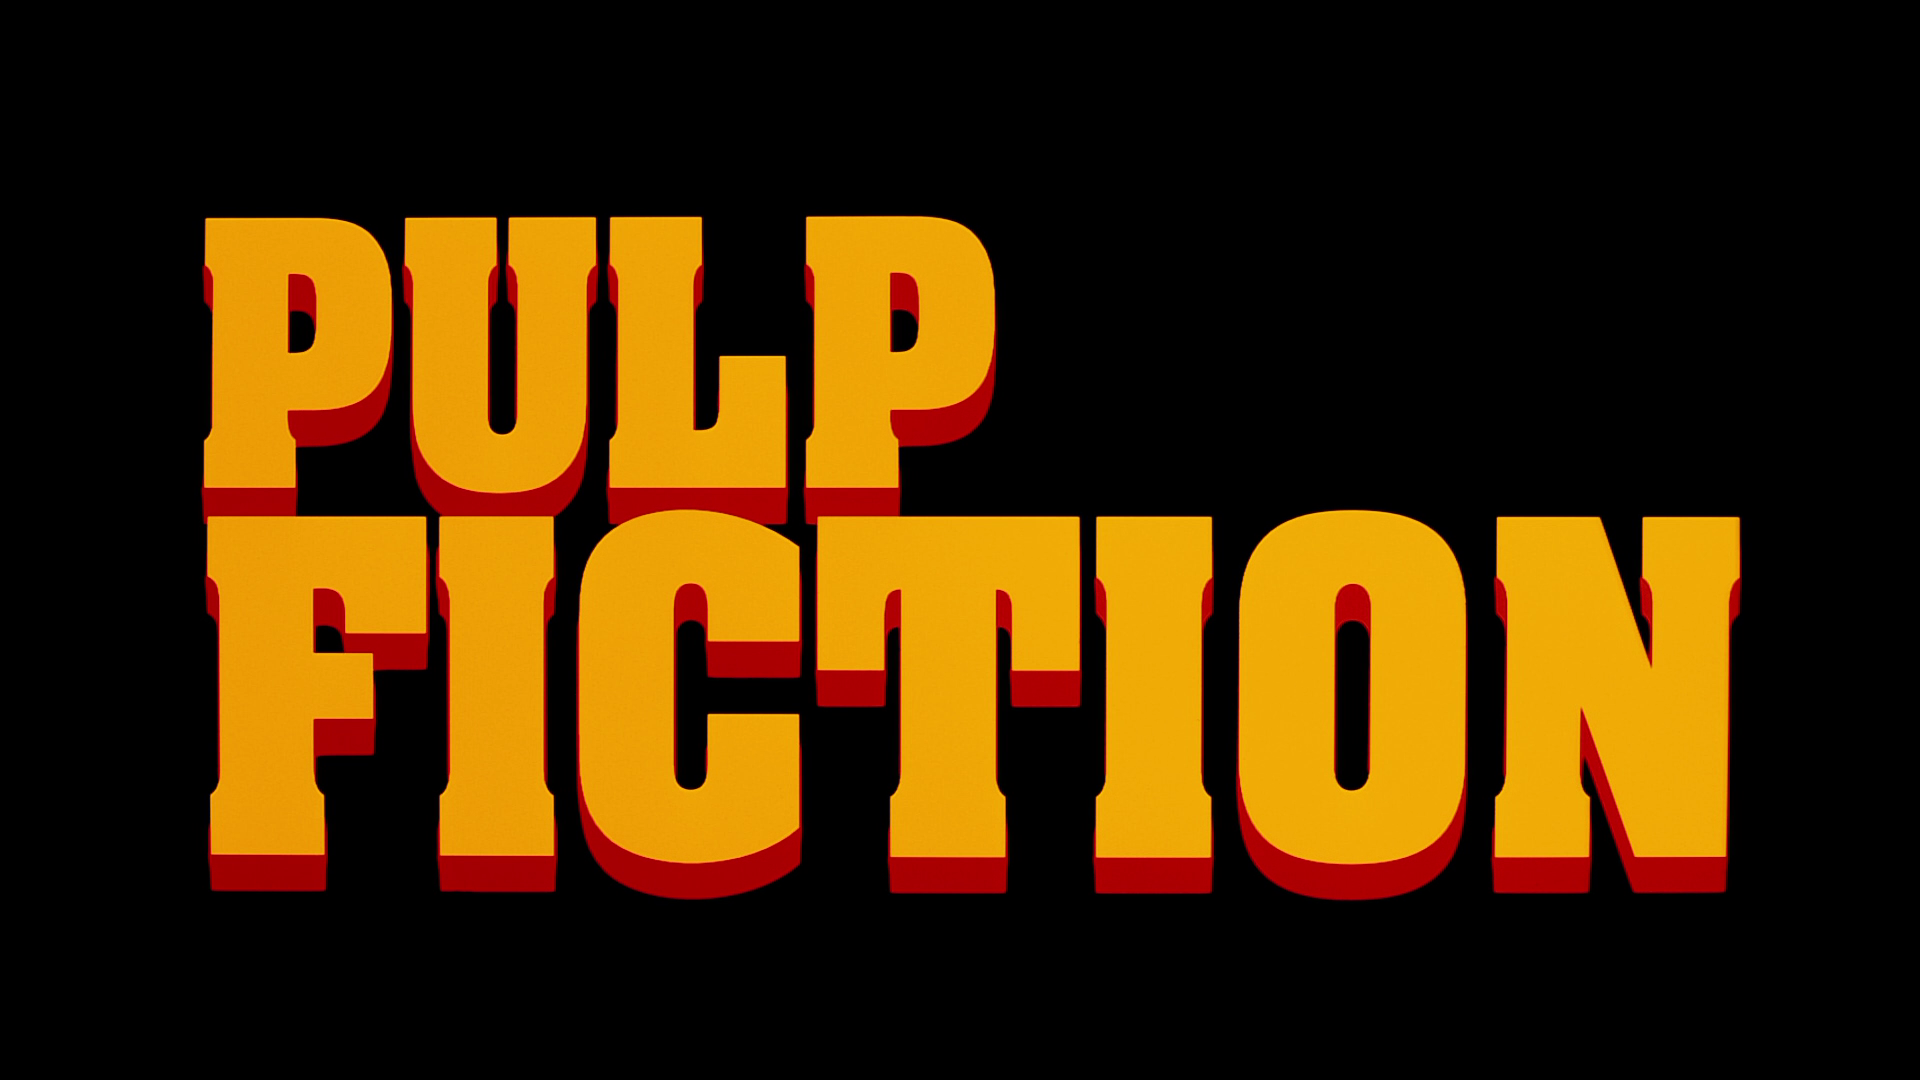 biblical references in pulp fiction essay Tarantino's kill bill and pulp fiction essay sample mention of quentin tarantino and one of his films brings to mind immediate and automatic instances of striking 'uniqueness' in terms of aesthetics, style and the approach to content and form which he incorporates in many of his movies.